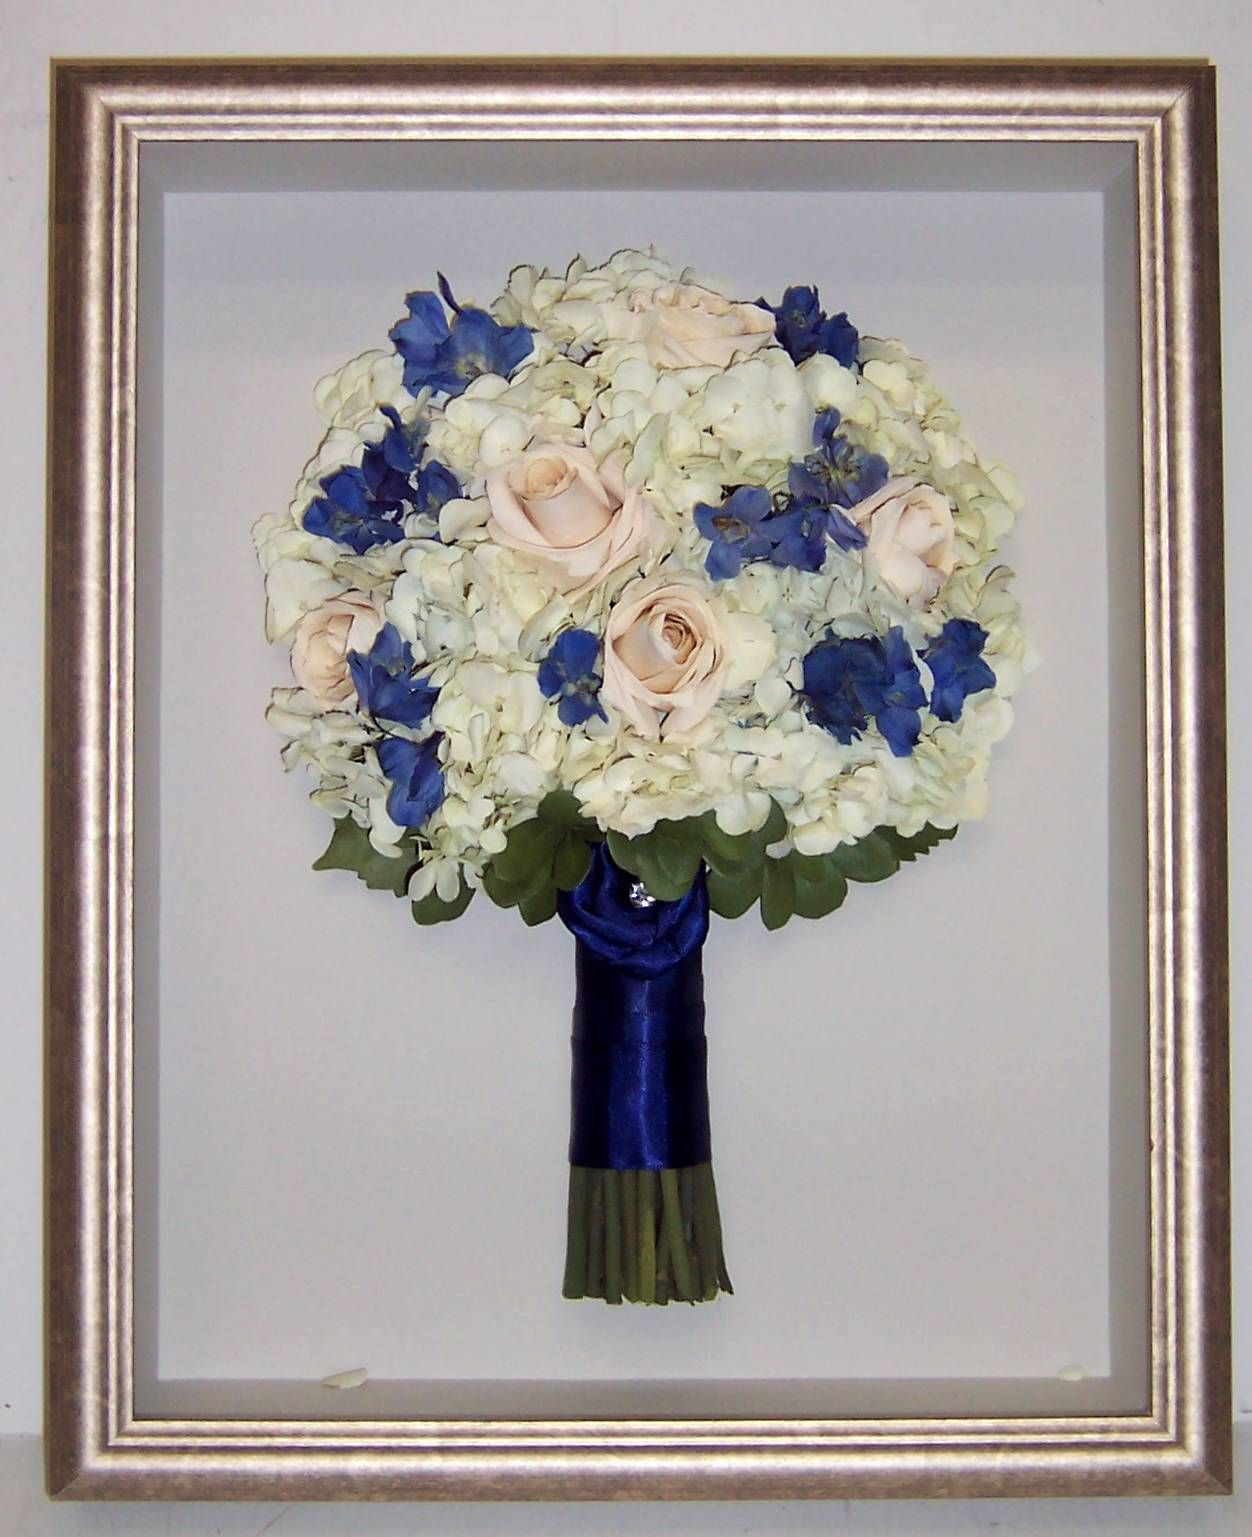 Colleen Dougherty had her bouquet framed using her original blue ribbon that brings out the blue in her lovely flowers. www.jenniferannedesigns.com